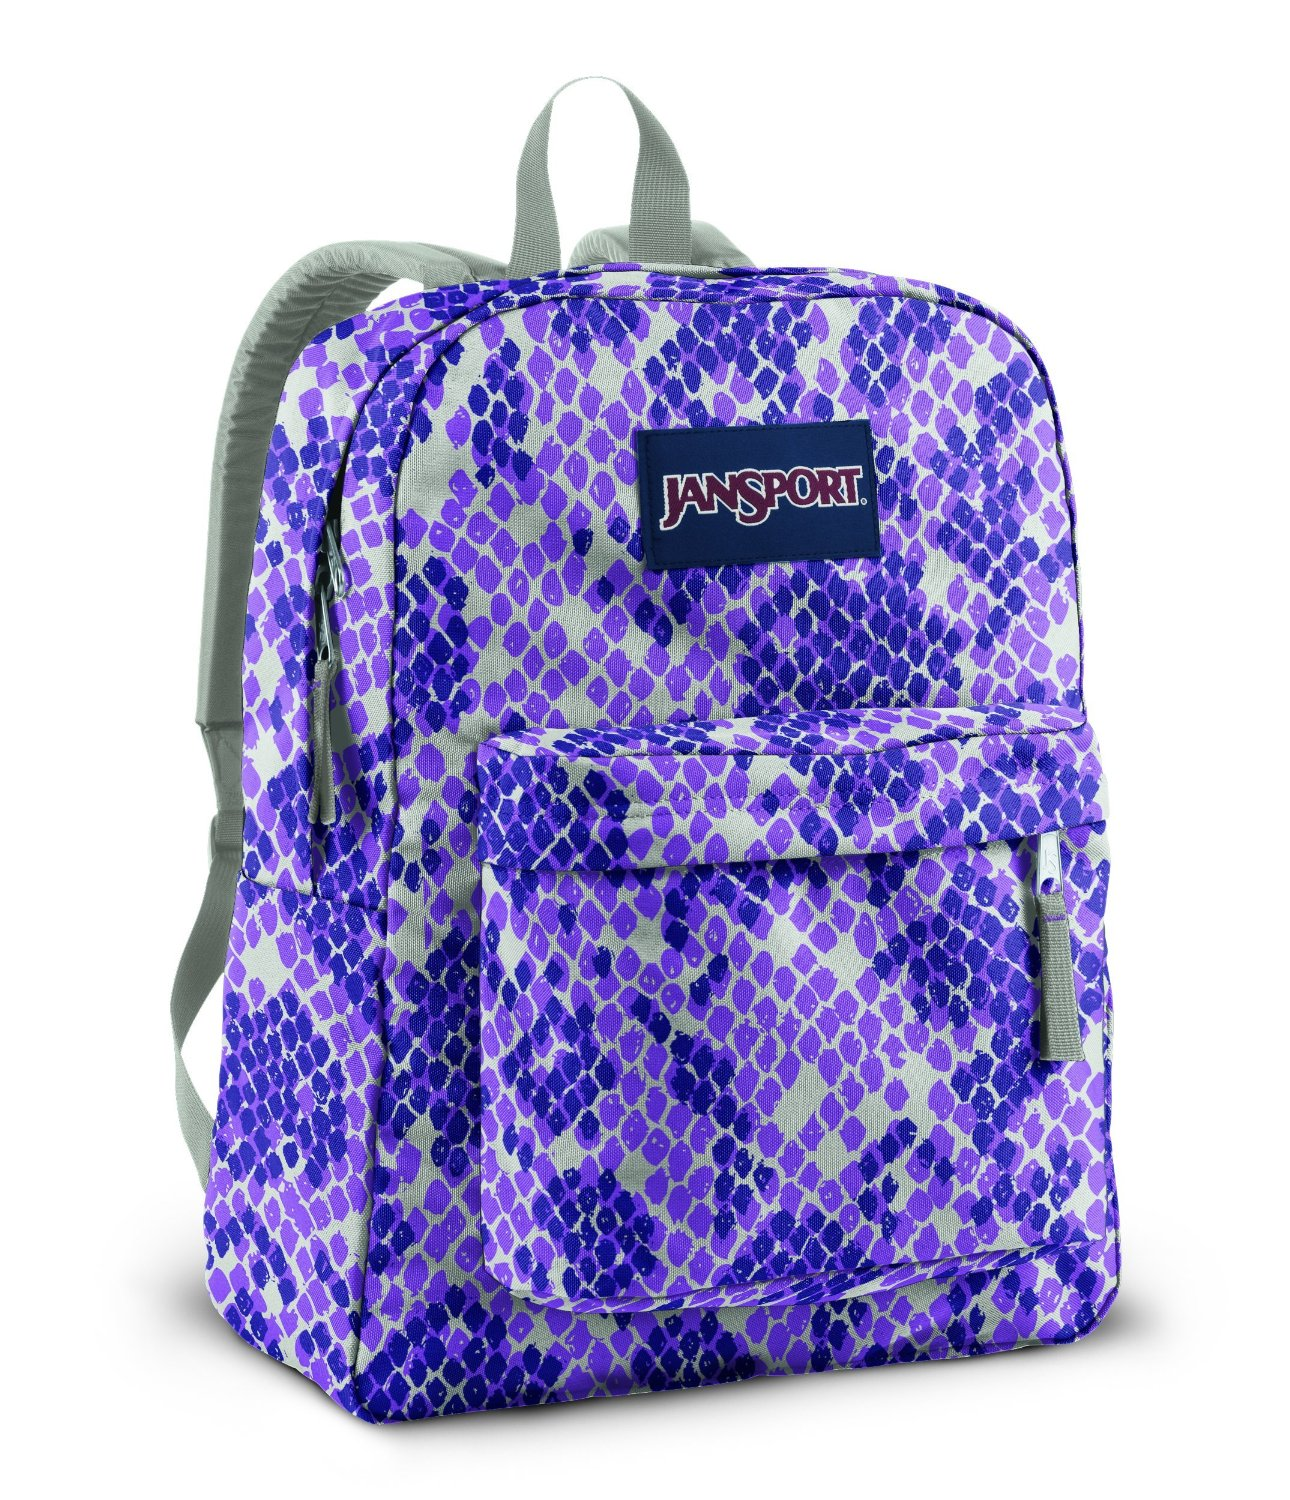 Jansport Girls Backpacks 8mJXn9DQ